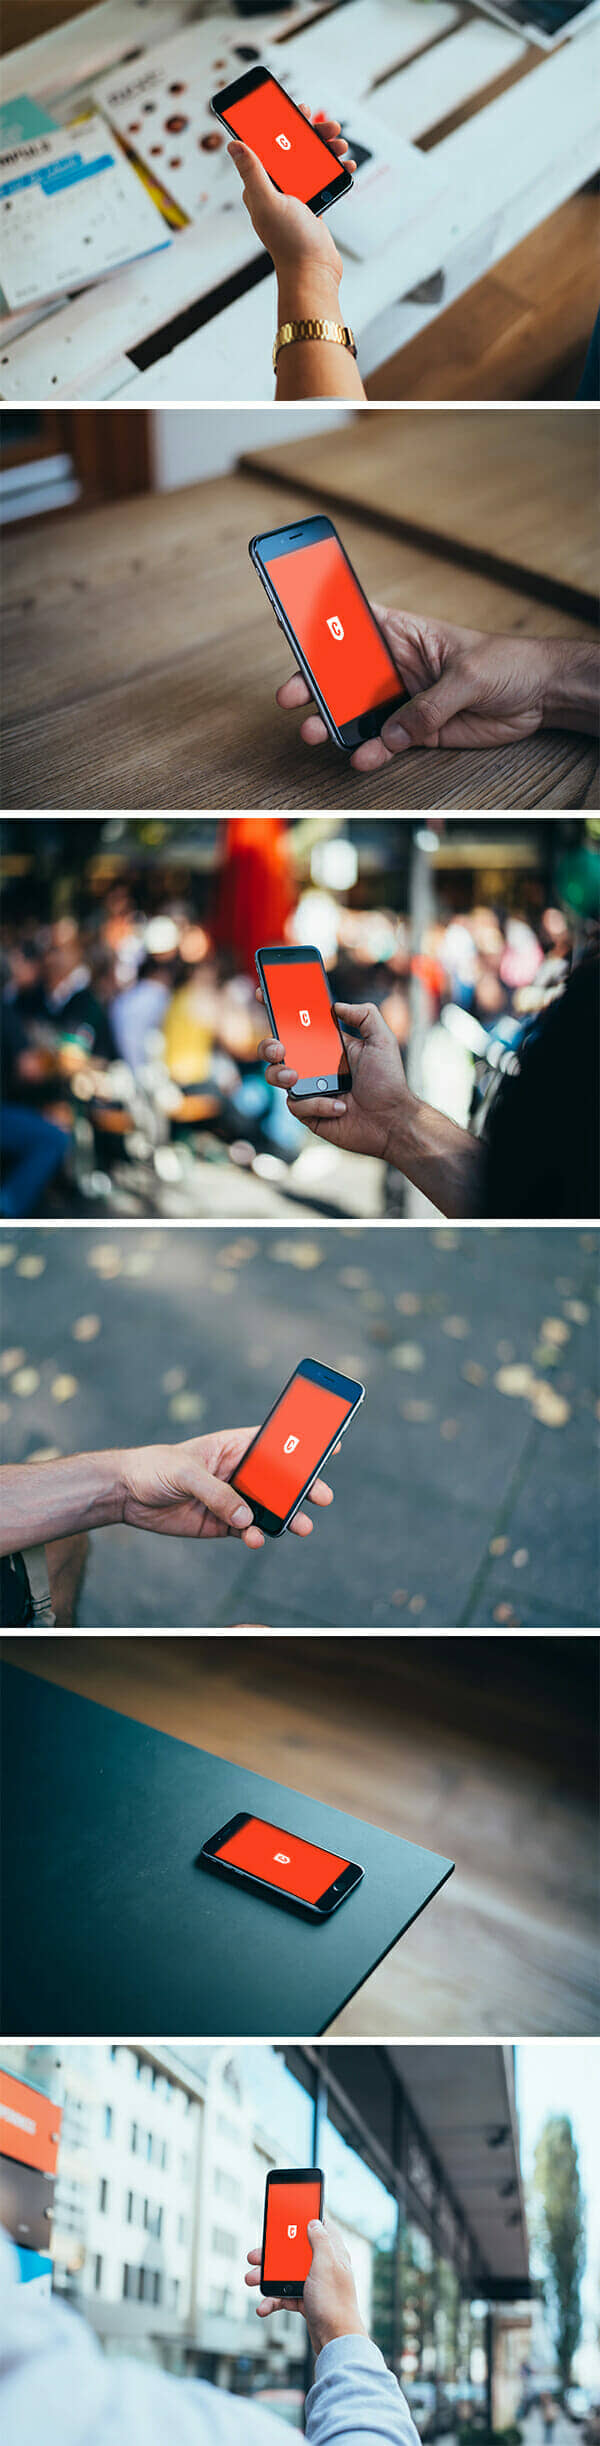 iPhone 6 Photo Based Mockup Collection